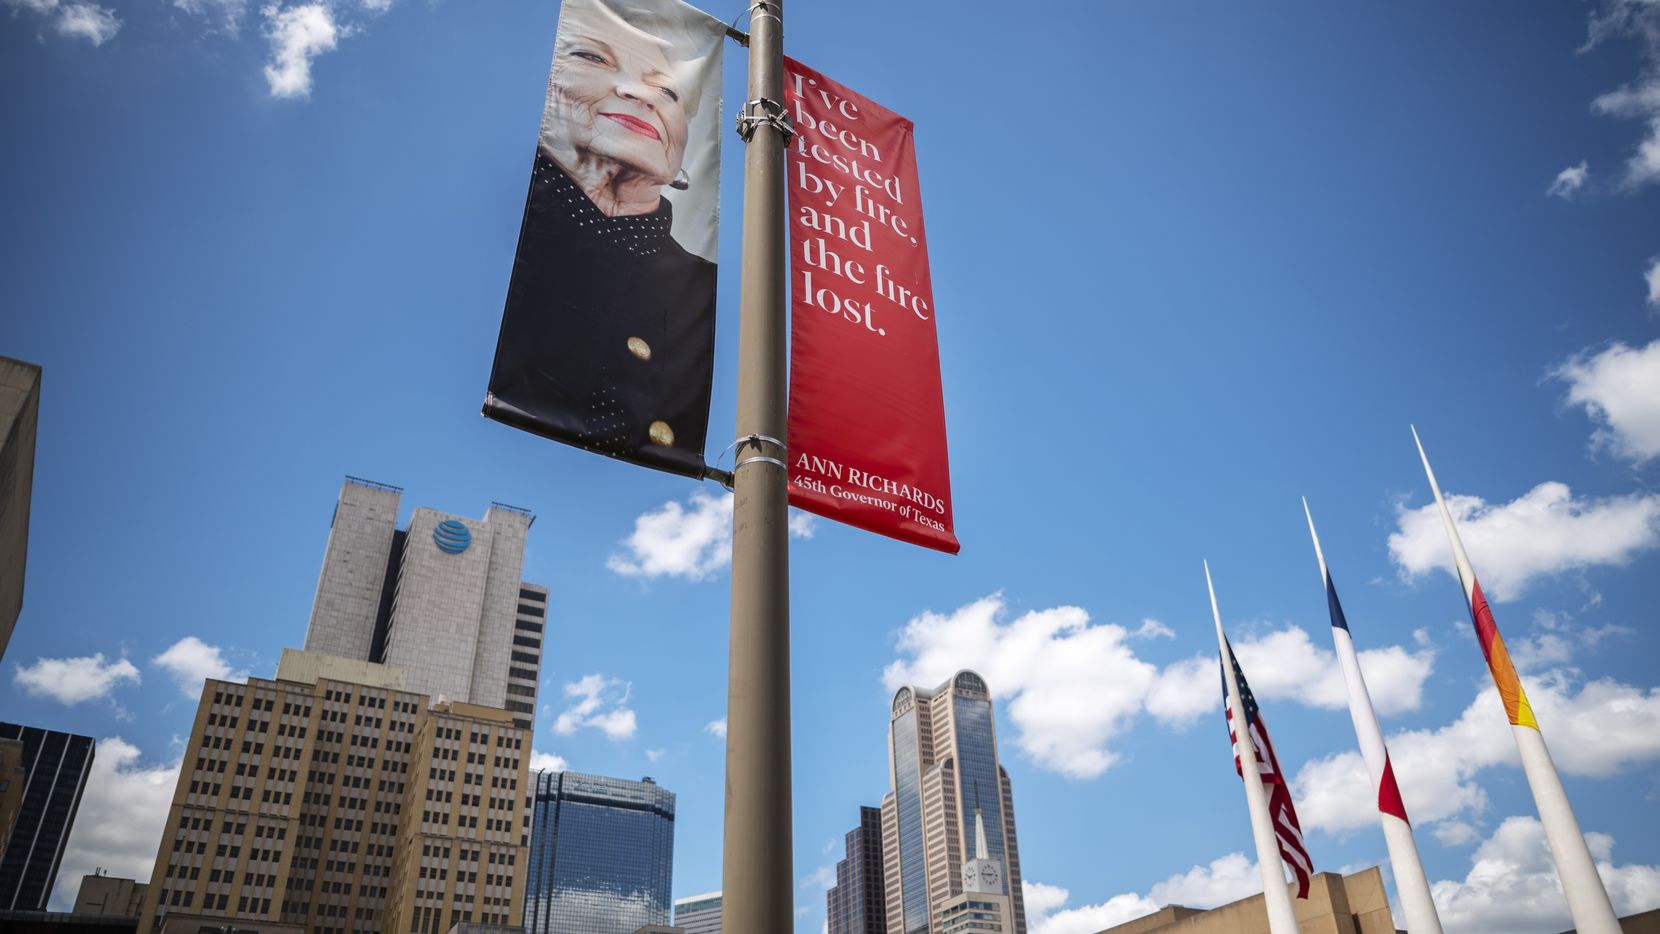 About 60 banners in downtown Dallas show 12 different designs featuring photos and quotes from Ann Richards, marking the 30th anniversary of her inauguration.